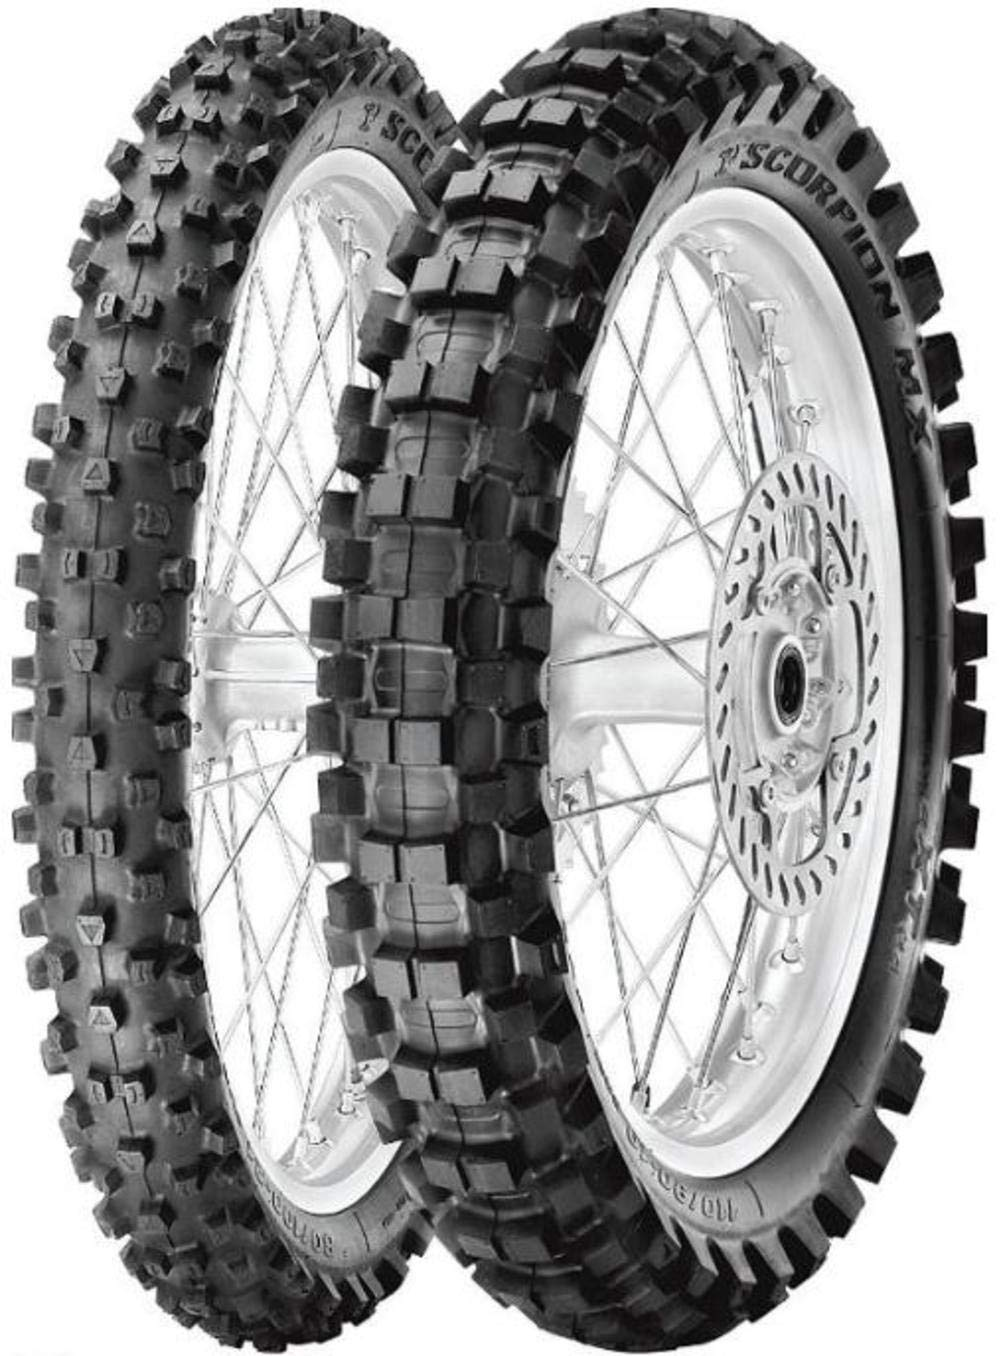 Pirelli Scorpion MX eXTra J Tire - Front - 70/100-17 , Position: Front, Tire Size: 70/100-17, Rim Size: 17, Load Rating: 40, Speed Rating: M, Tire Type: Offroad, Tire Application: Intermediate 2134400 4333046092